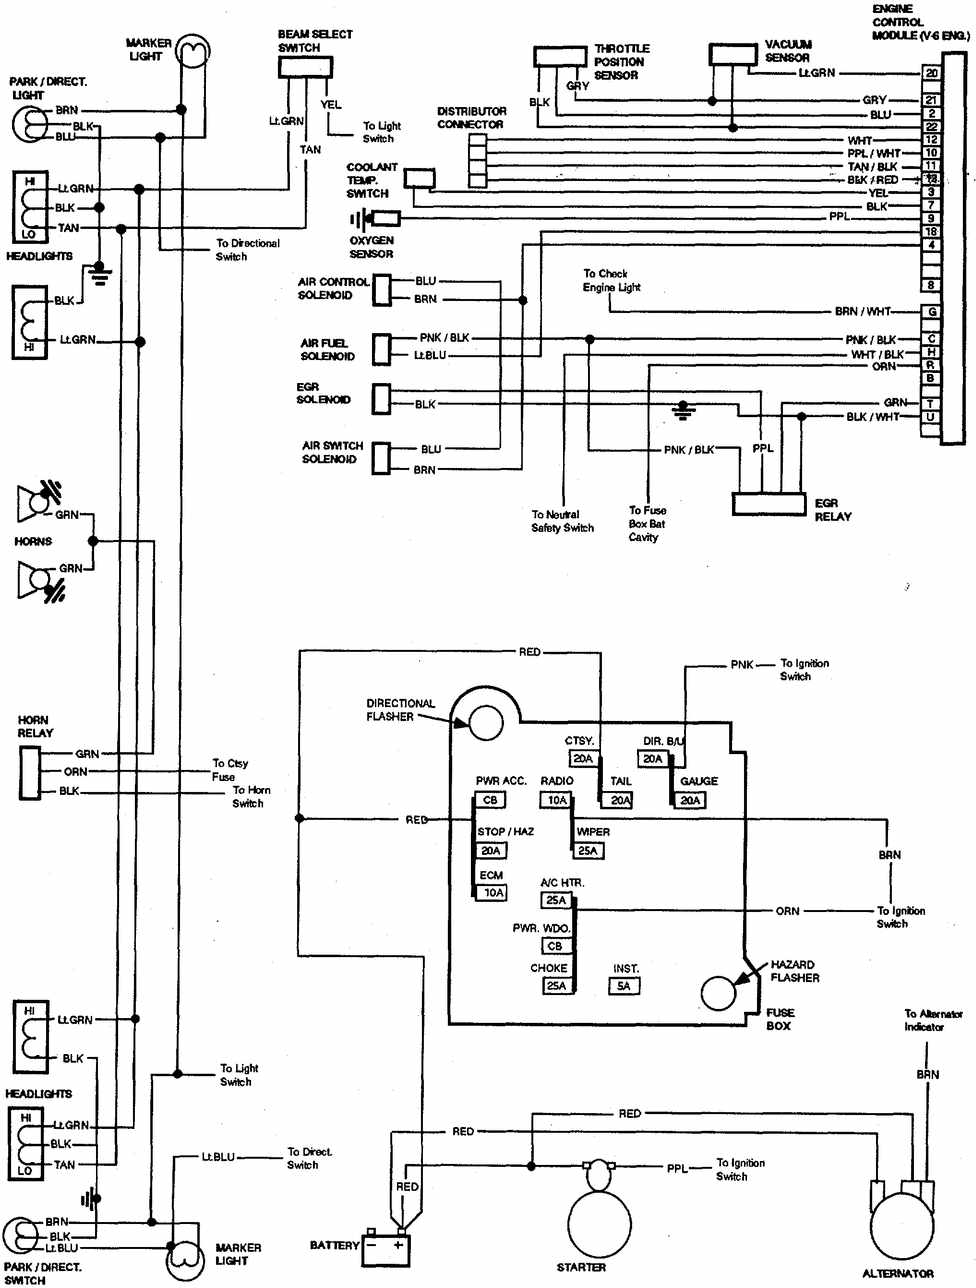 1975 Chevrolet Wiring Diagram List Of Schematic Circuit 1978 Chevy Turn Signal Detailed Schematics Rh Antonartgallery Com Camaro